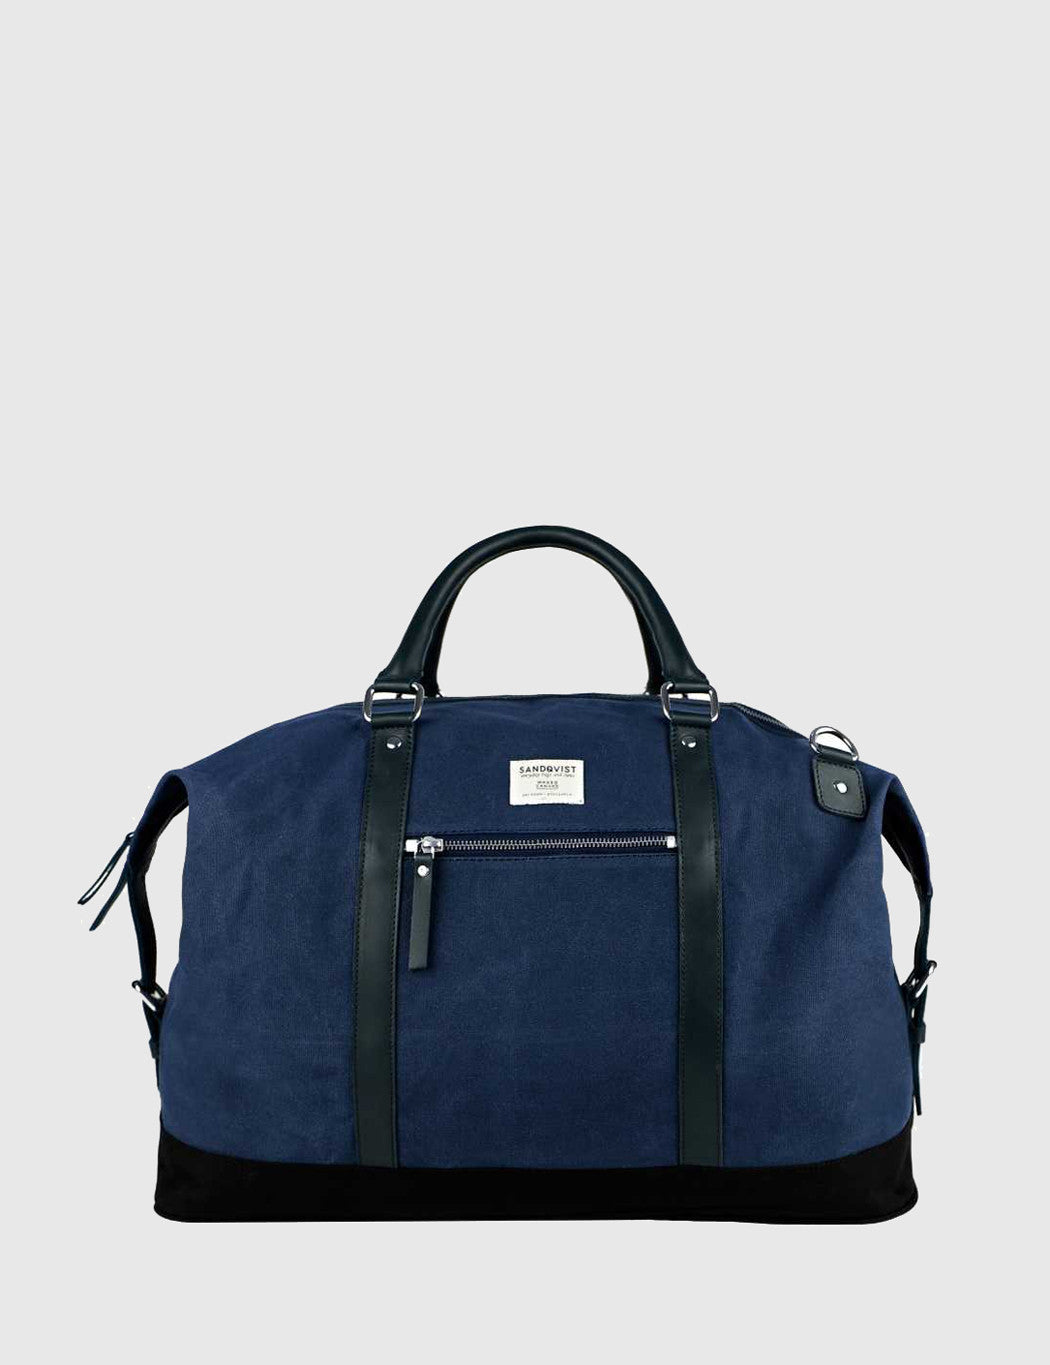 Sandqvist Jordan Weekend Bag - Waxed Blue